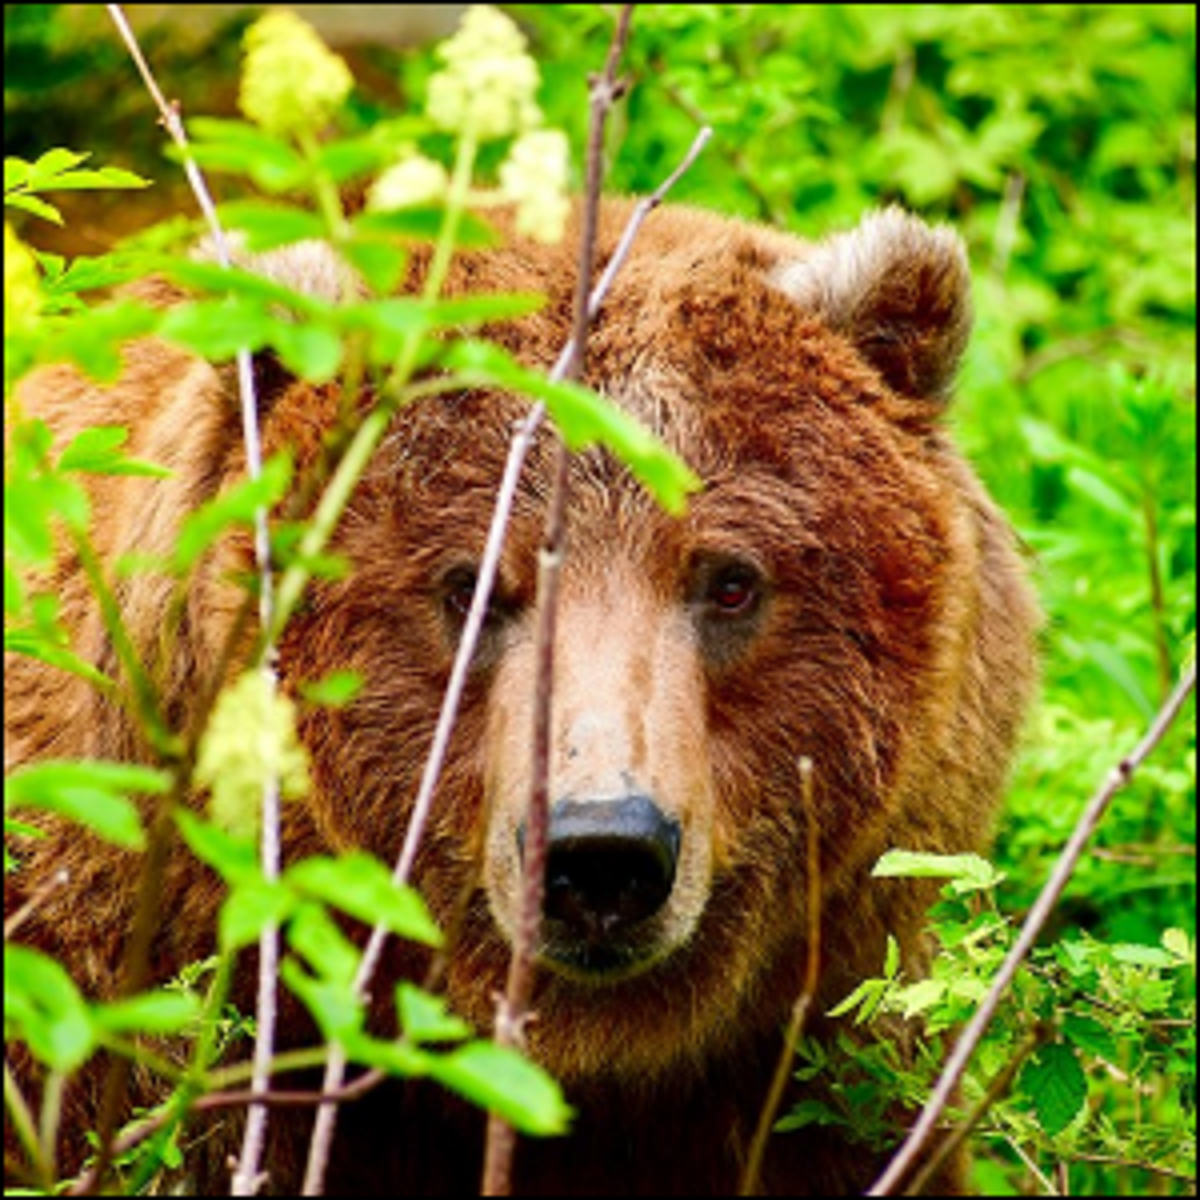 A grizzly bear hiding behind some greenery in Juneau, Alaska.